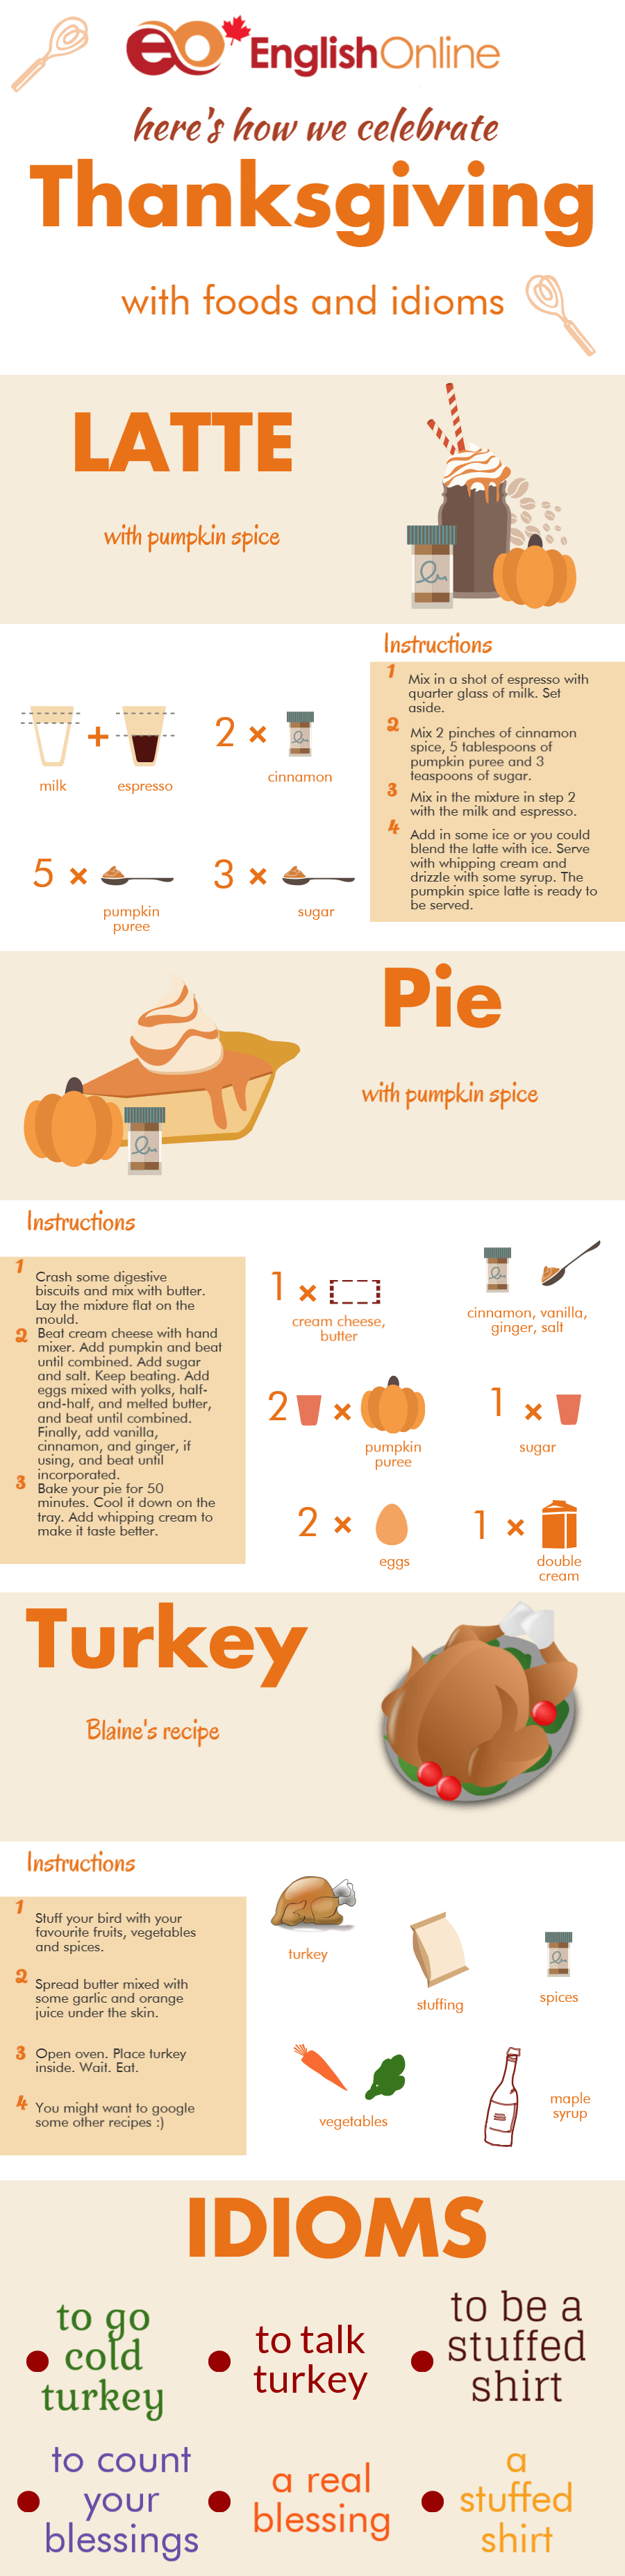 An infographic with images of turkey and pumpkin pie.